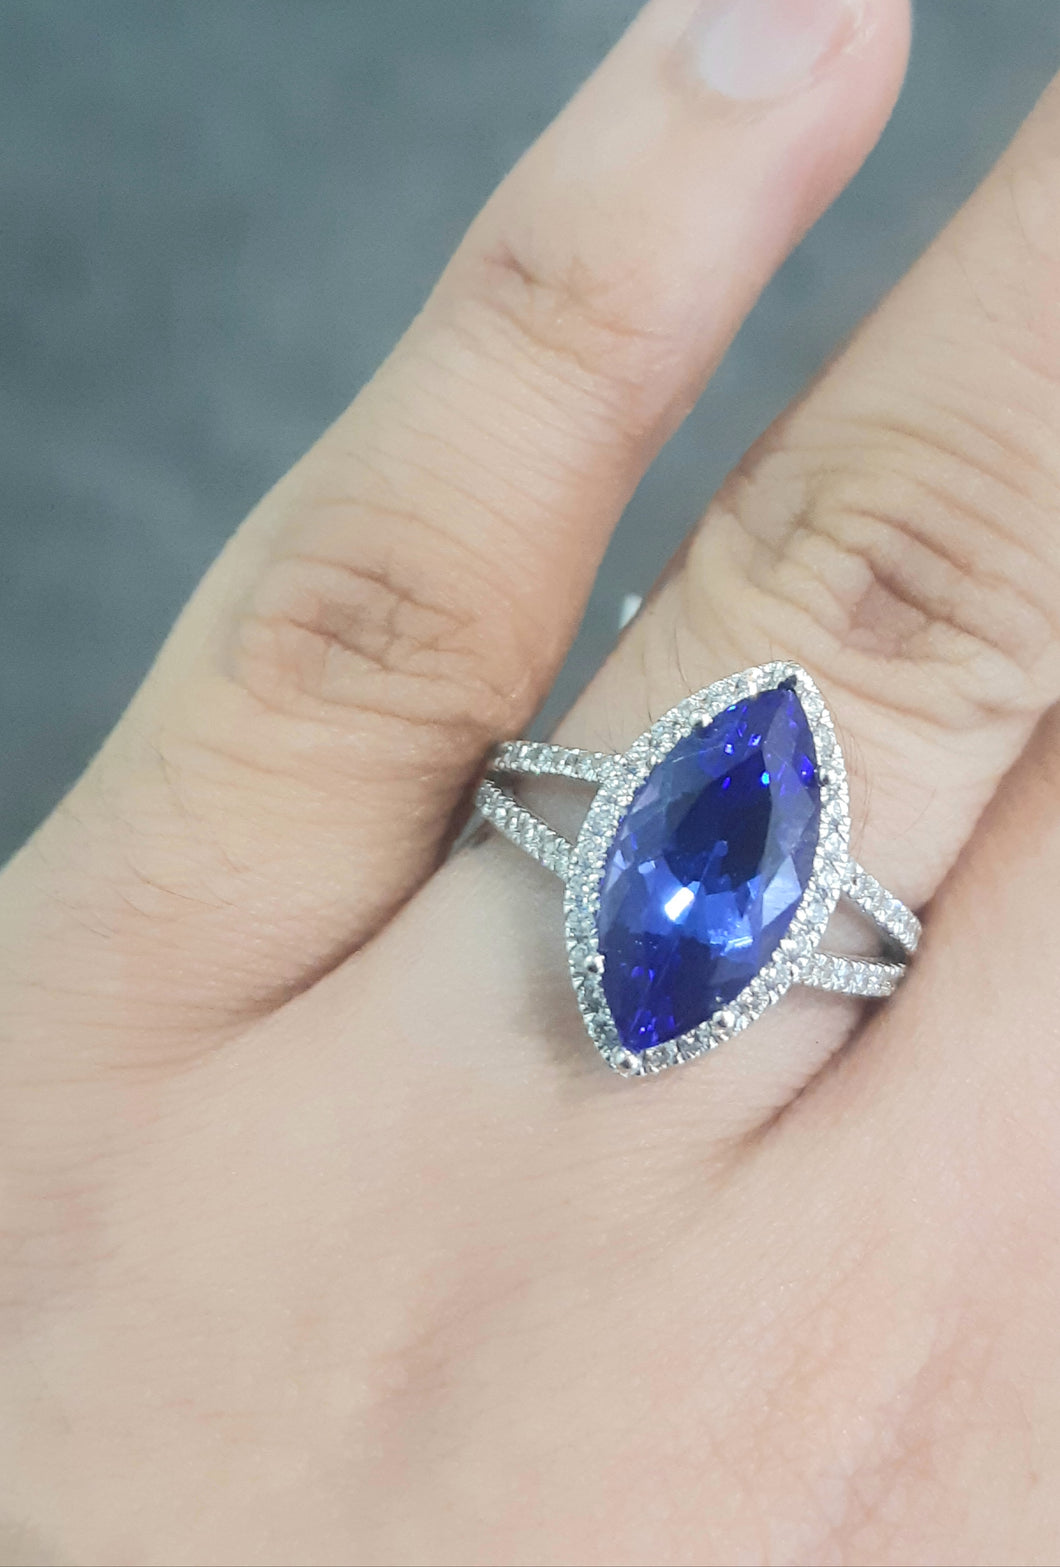 3.26ct Marquise Cut Tanzanite | 0.40cts [60] Round Brilliant Cut Diamonds | Split Shank Designer Ring | 18kt White Gold